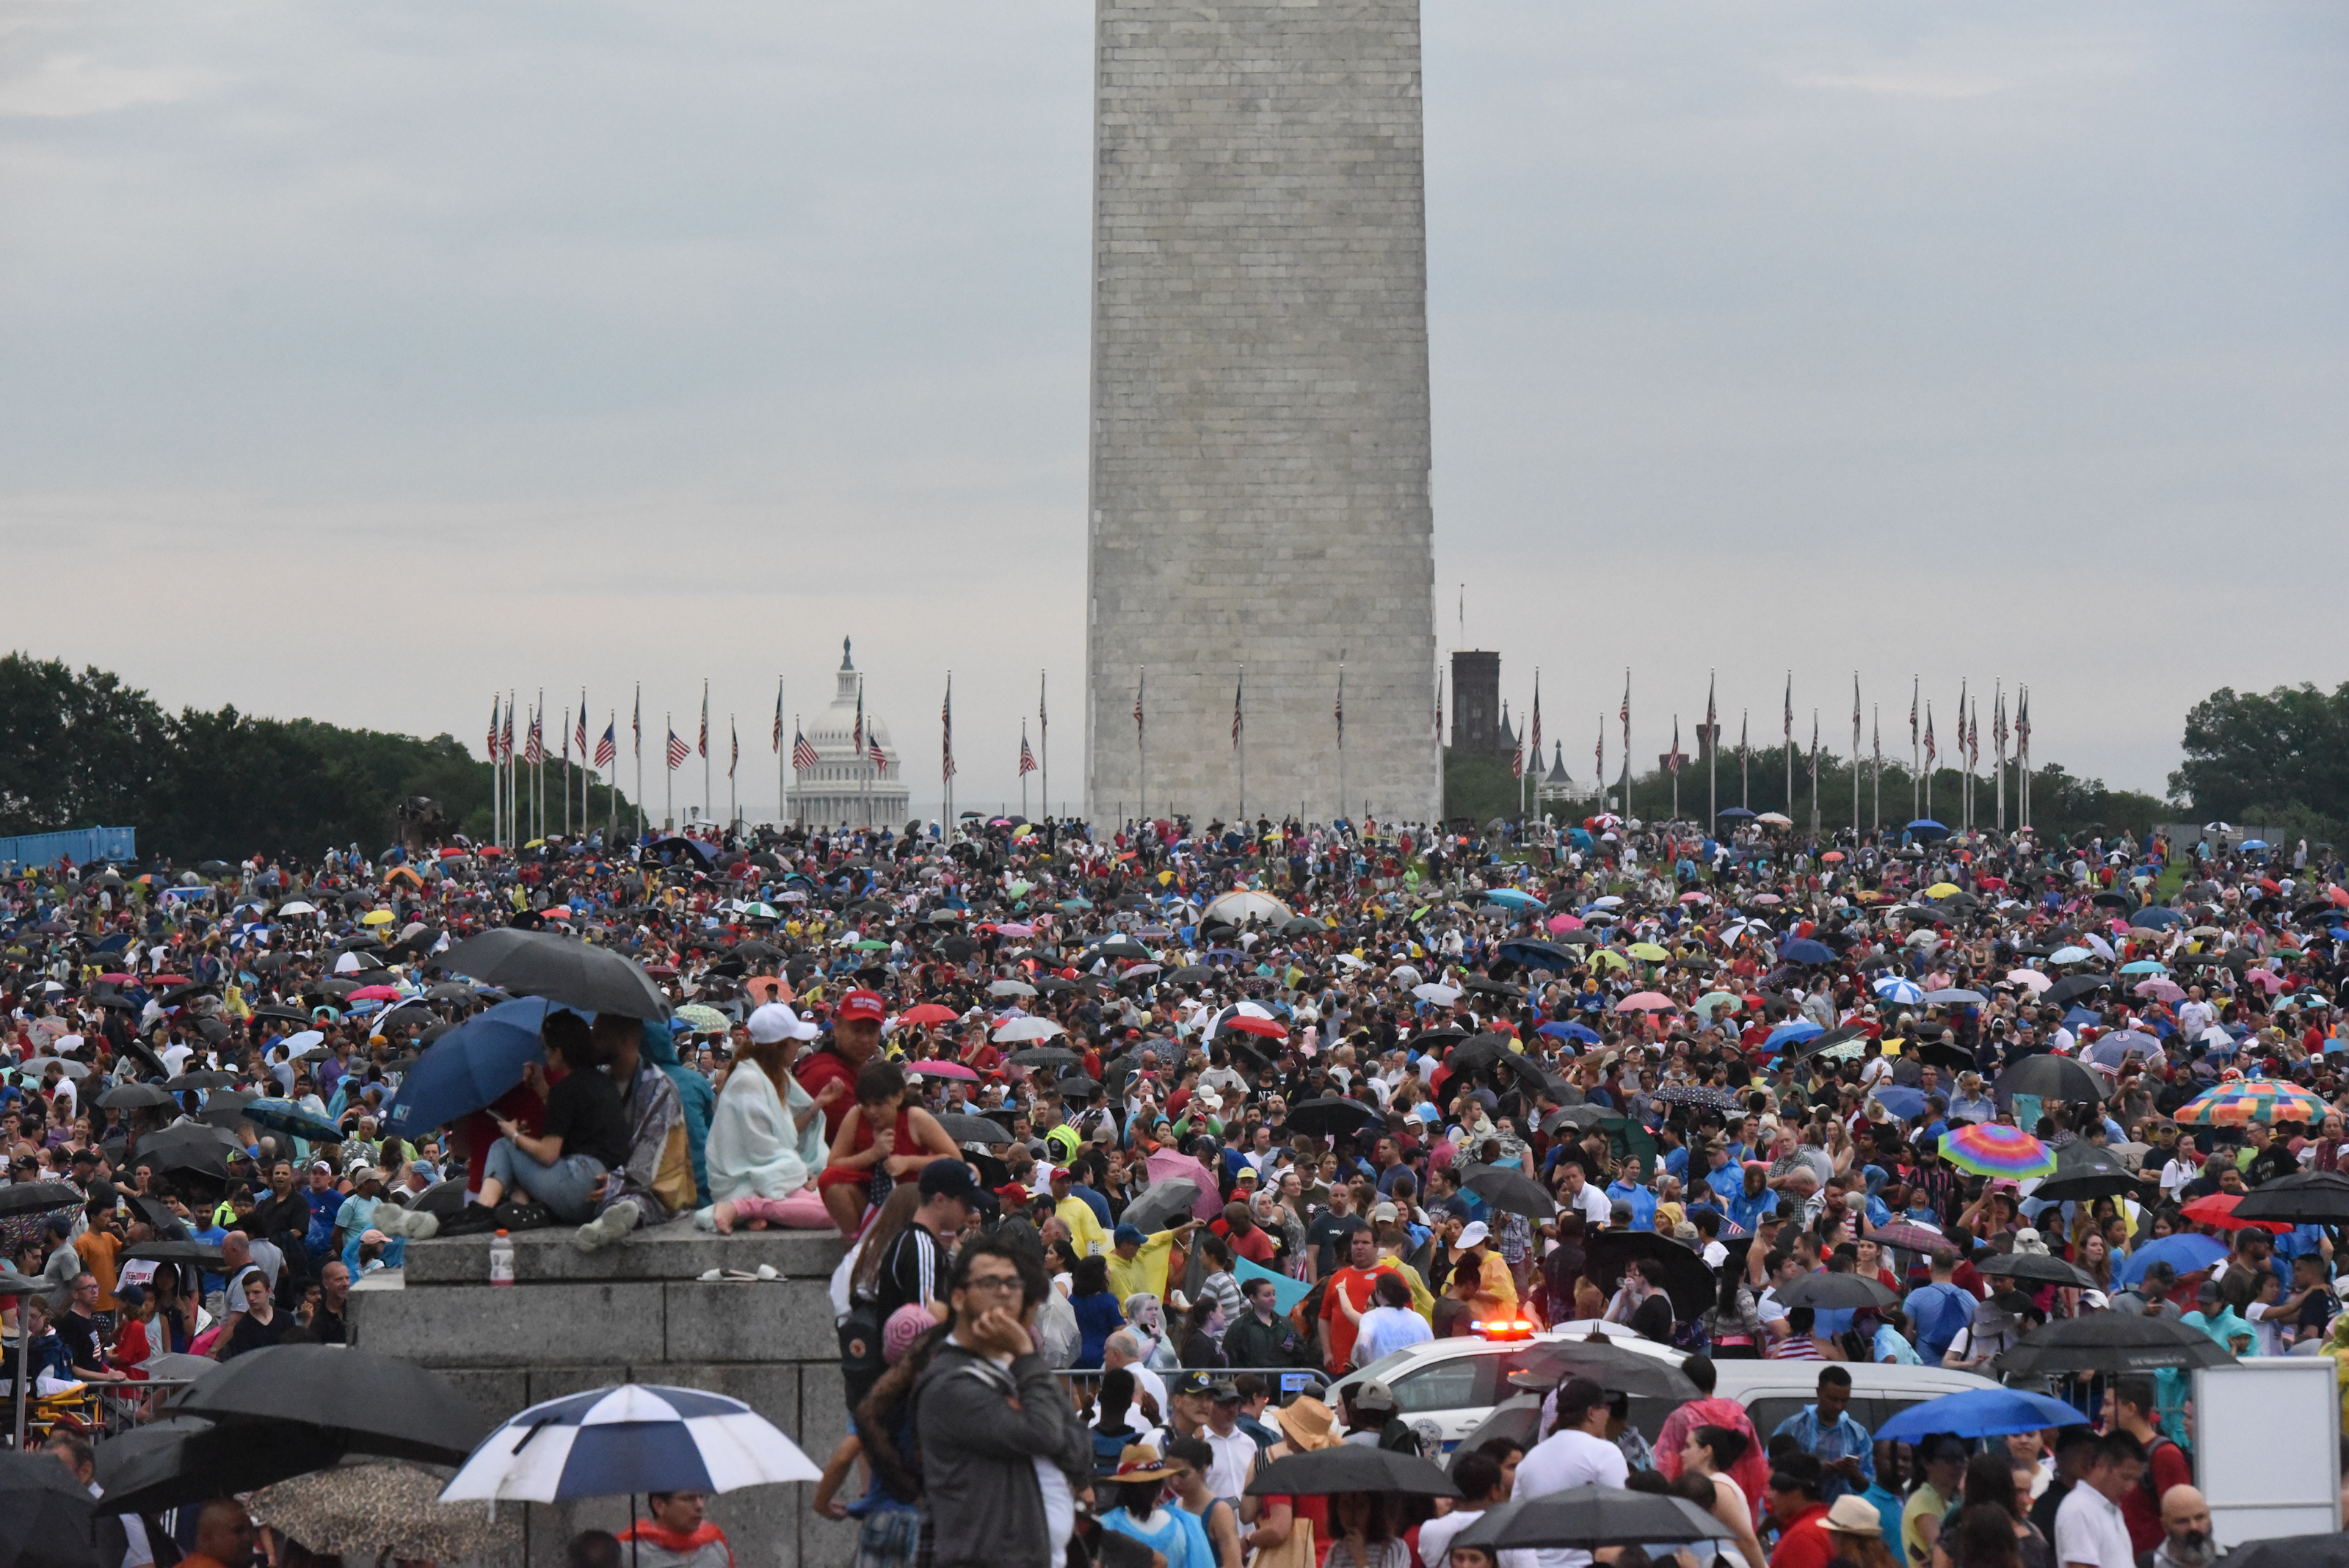 WASHINGTON, DC - JULY 04: People gather on the National Mall while President Donald Trump gives his speech during Fourth of July festivities on July 4, 2019 in Washington, DC. (Photo by Stephanie Keith/Getty Images)